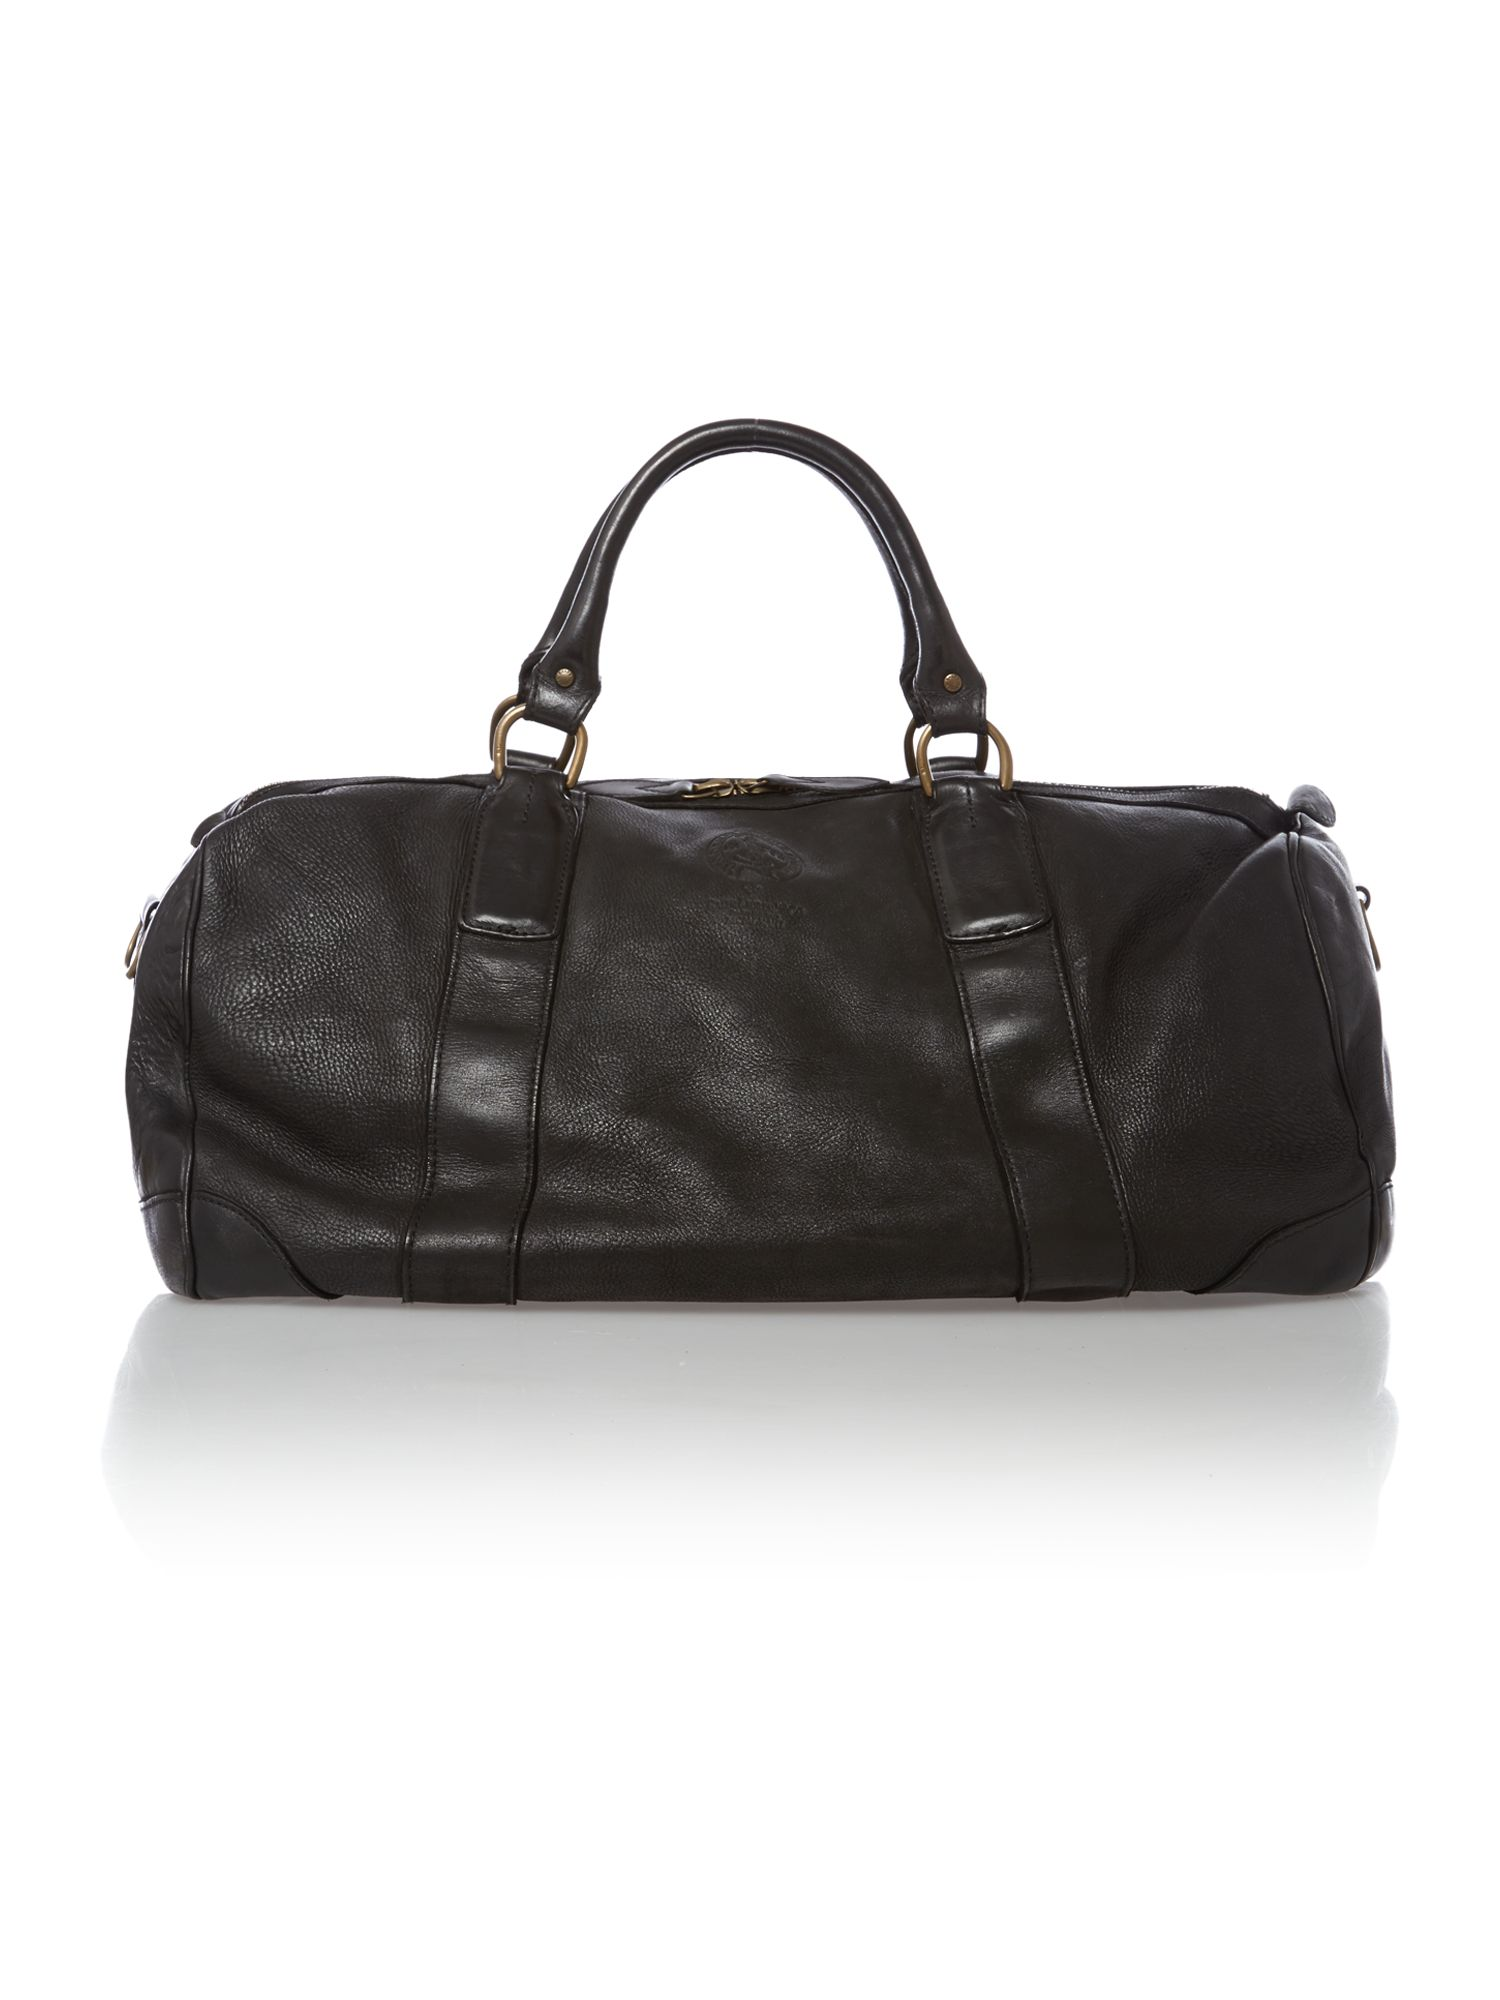 Gym holdall bag